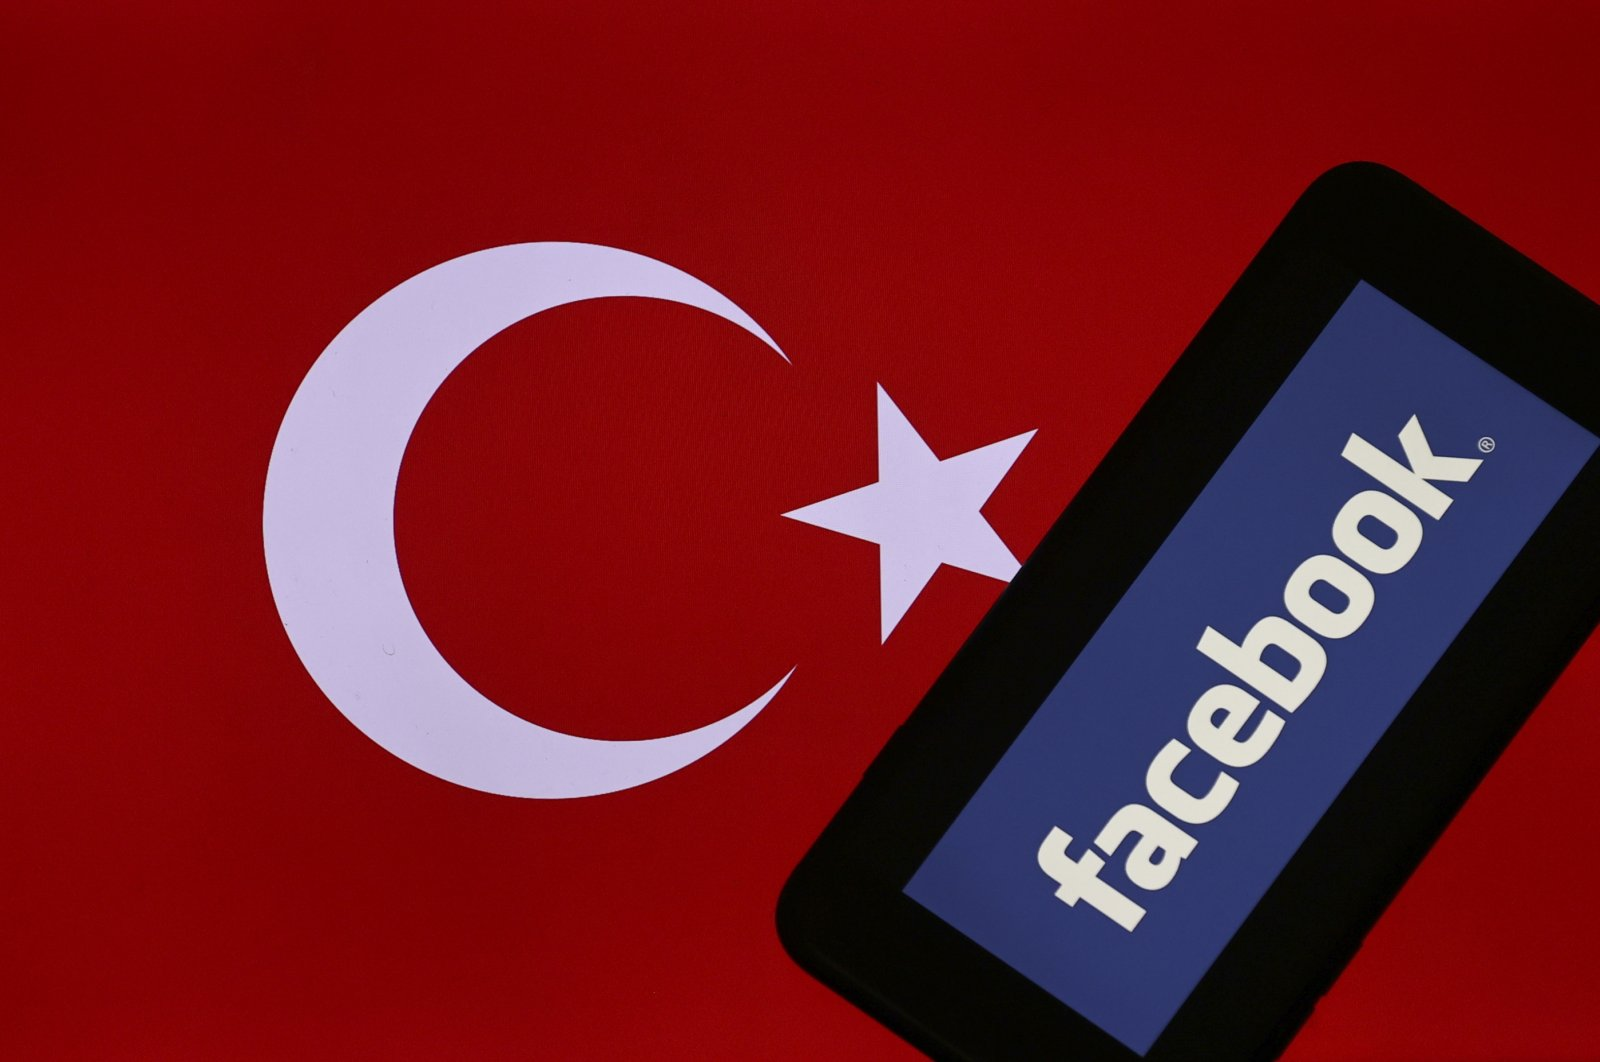 The Facebook logo is seen on a mobile phone screen with the Turkish flag in the background in this illustration photo, in the capital Ankara, Turkey, Jan. 18, 2021. (AA Photo)